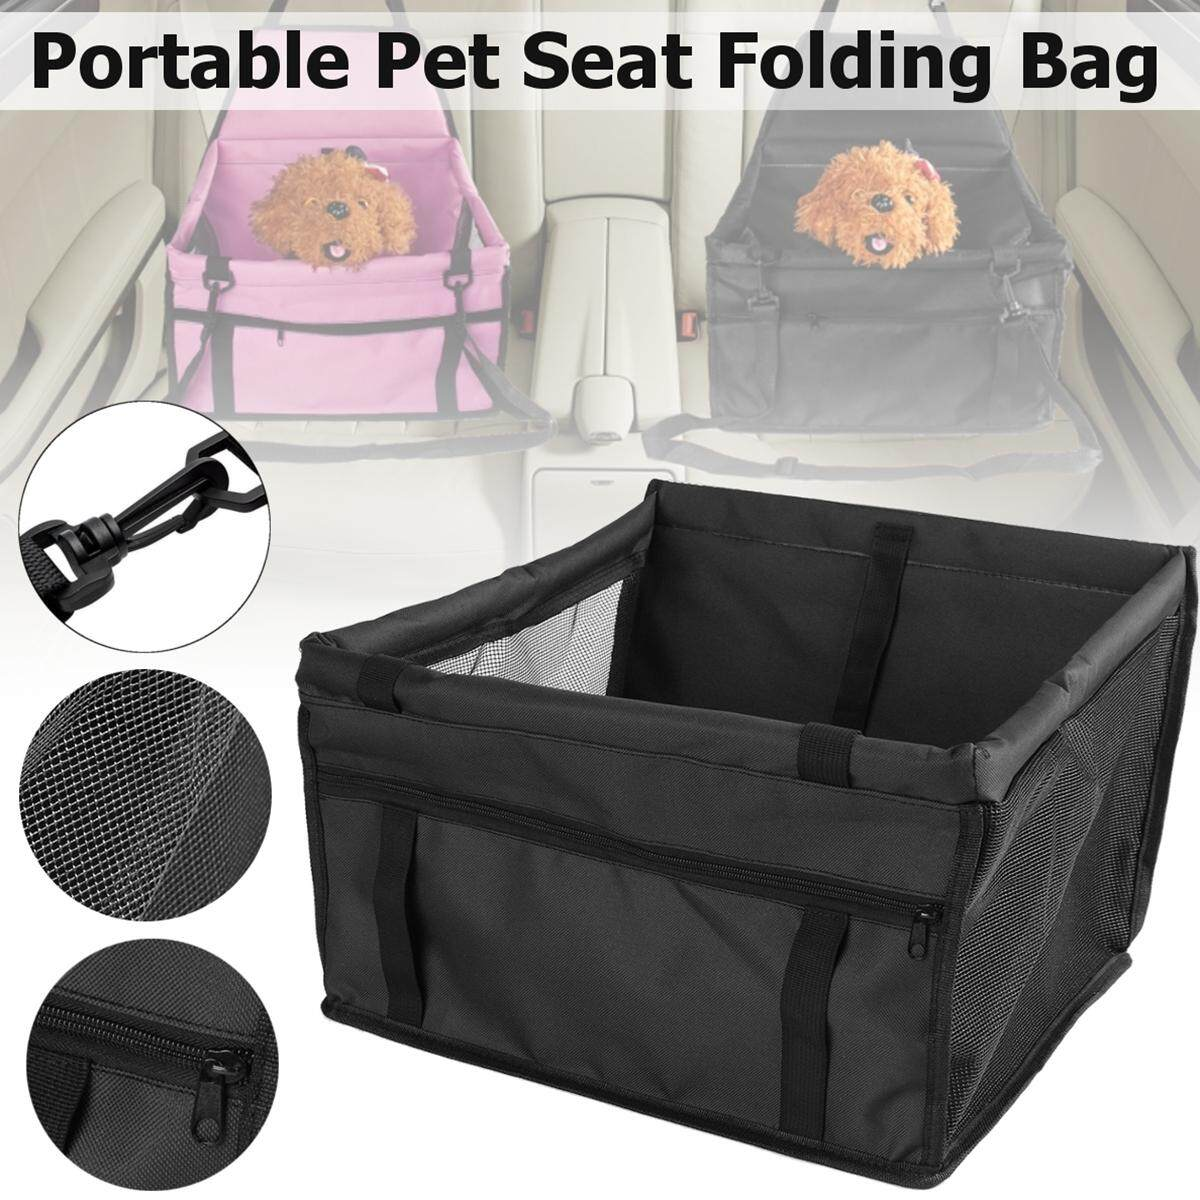 Portable Pet Car Seat Folding Travel Booster Bag Safely Carrier Belt Dog Puppy (black) By Freebang.